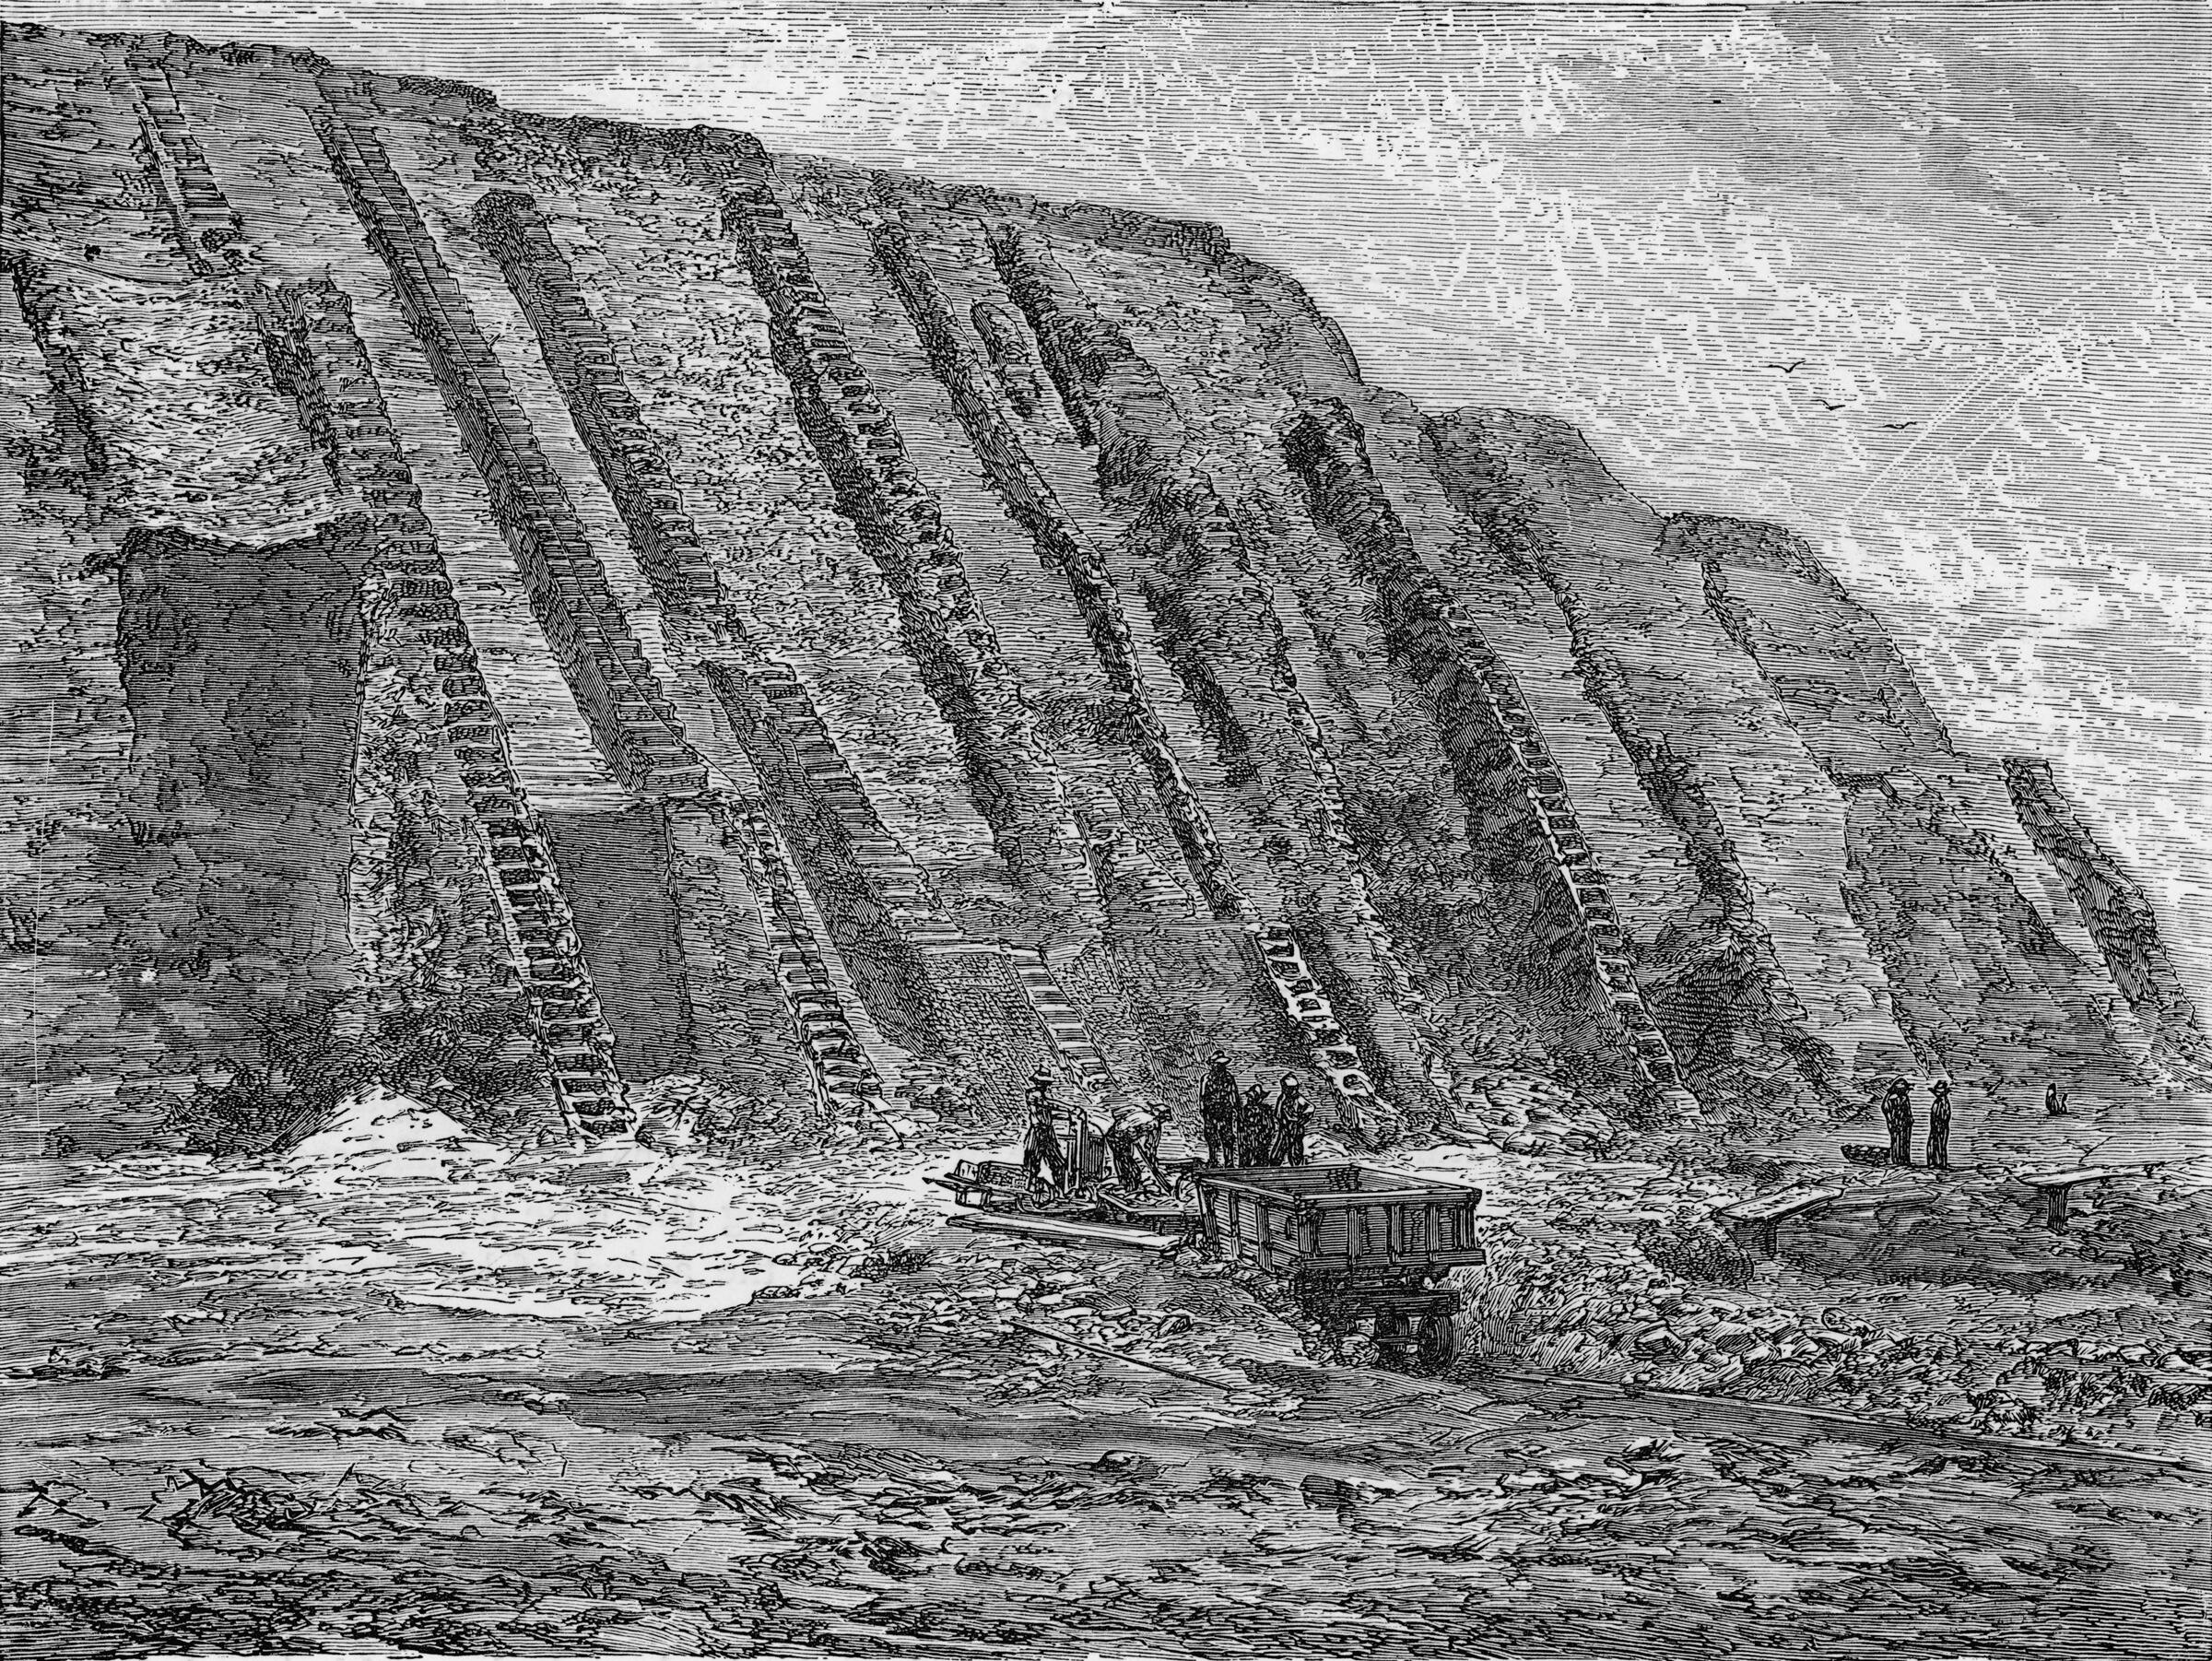 Guano mining operations depicted in the Chincha Islands, Peru around 1870. The deposits of seabirds were sought after as prized fertilizer in the nineteenth century. Engraving: Chronicle/Alamy